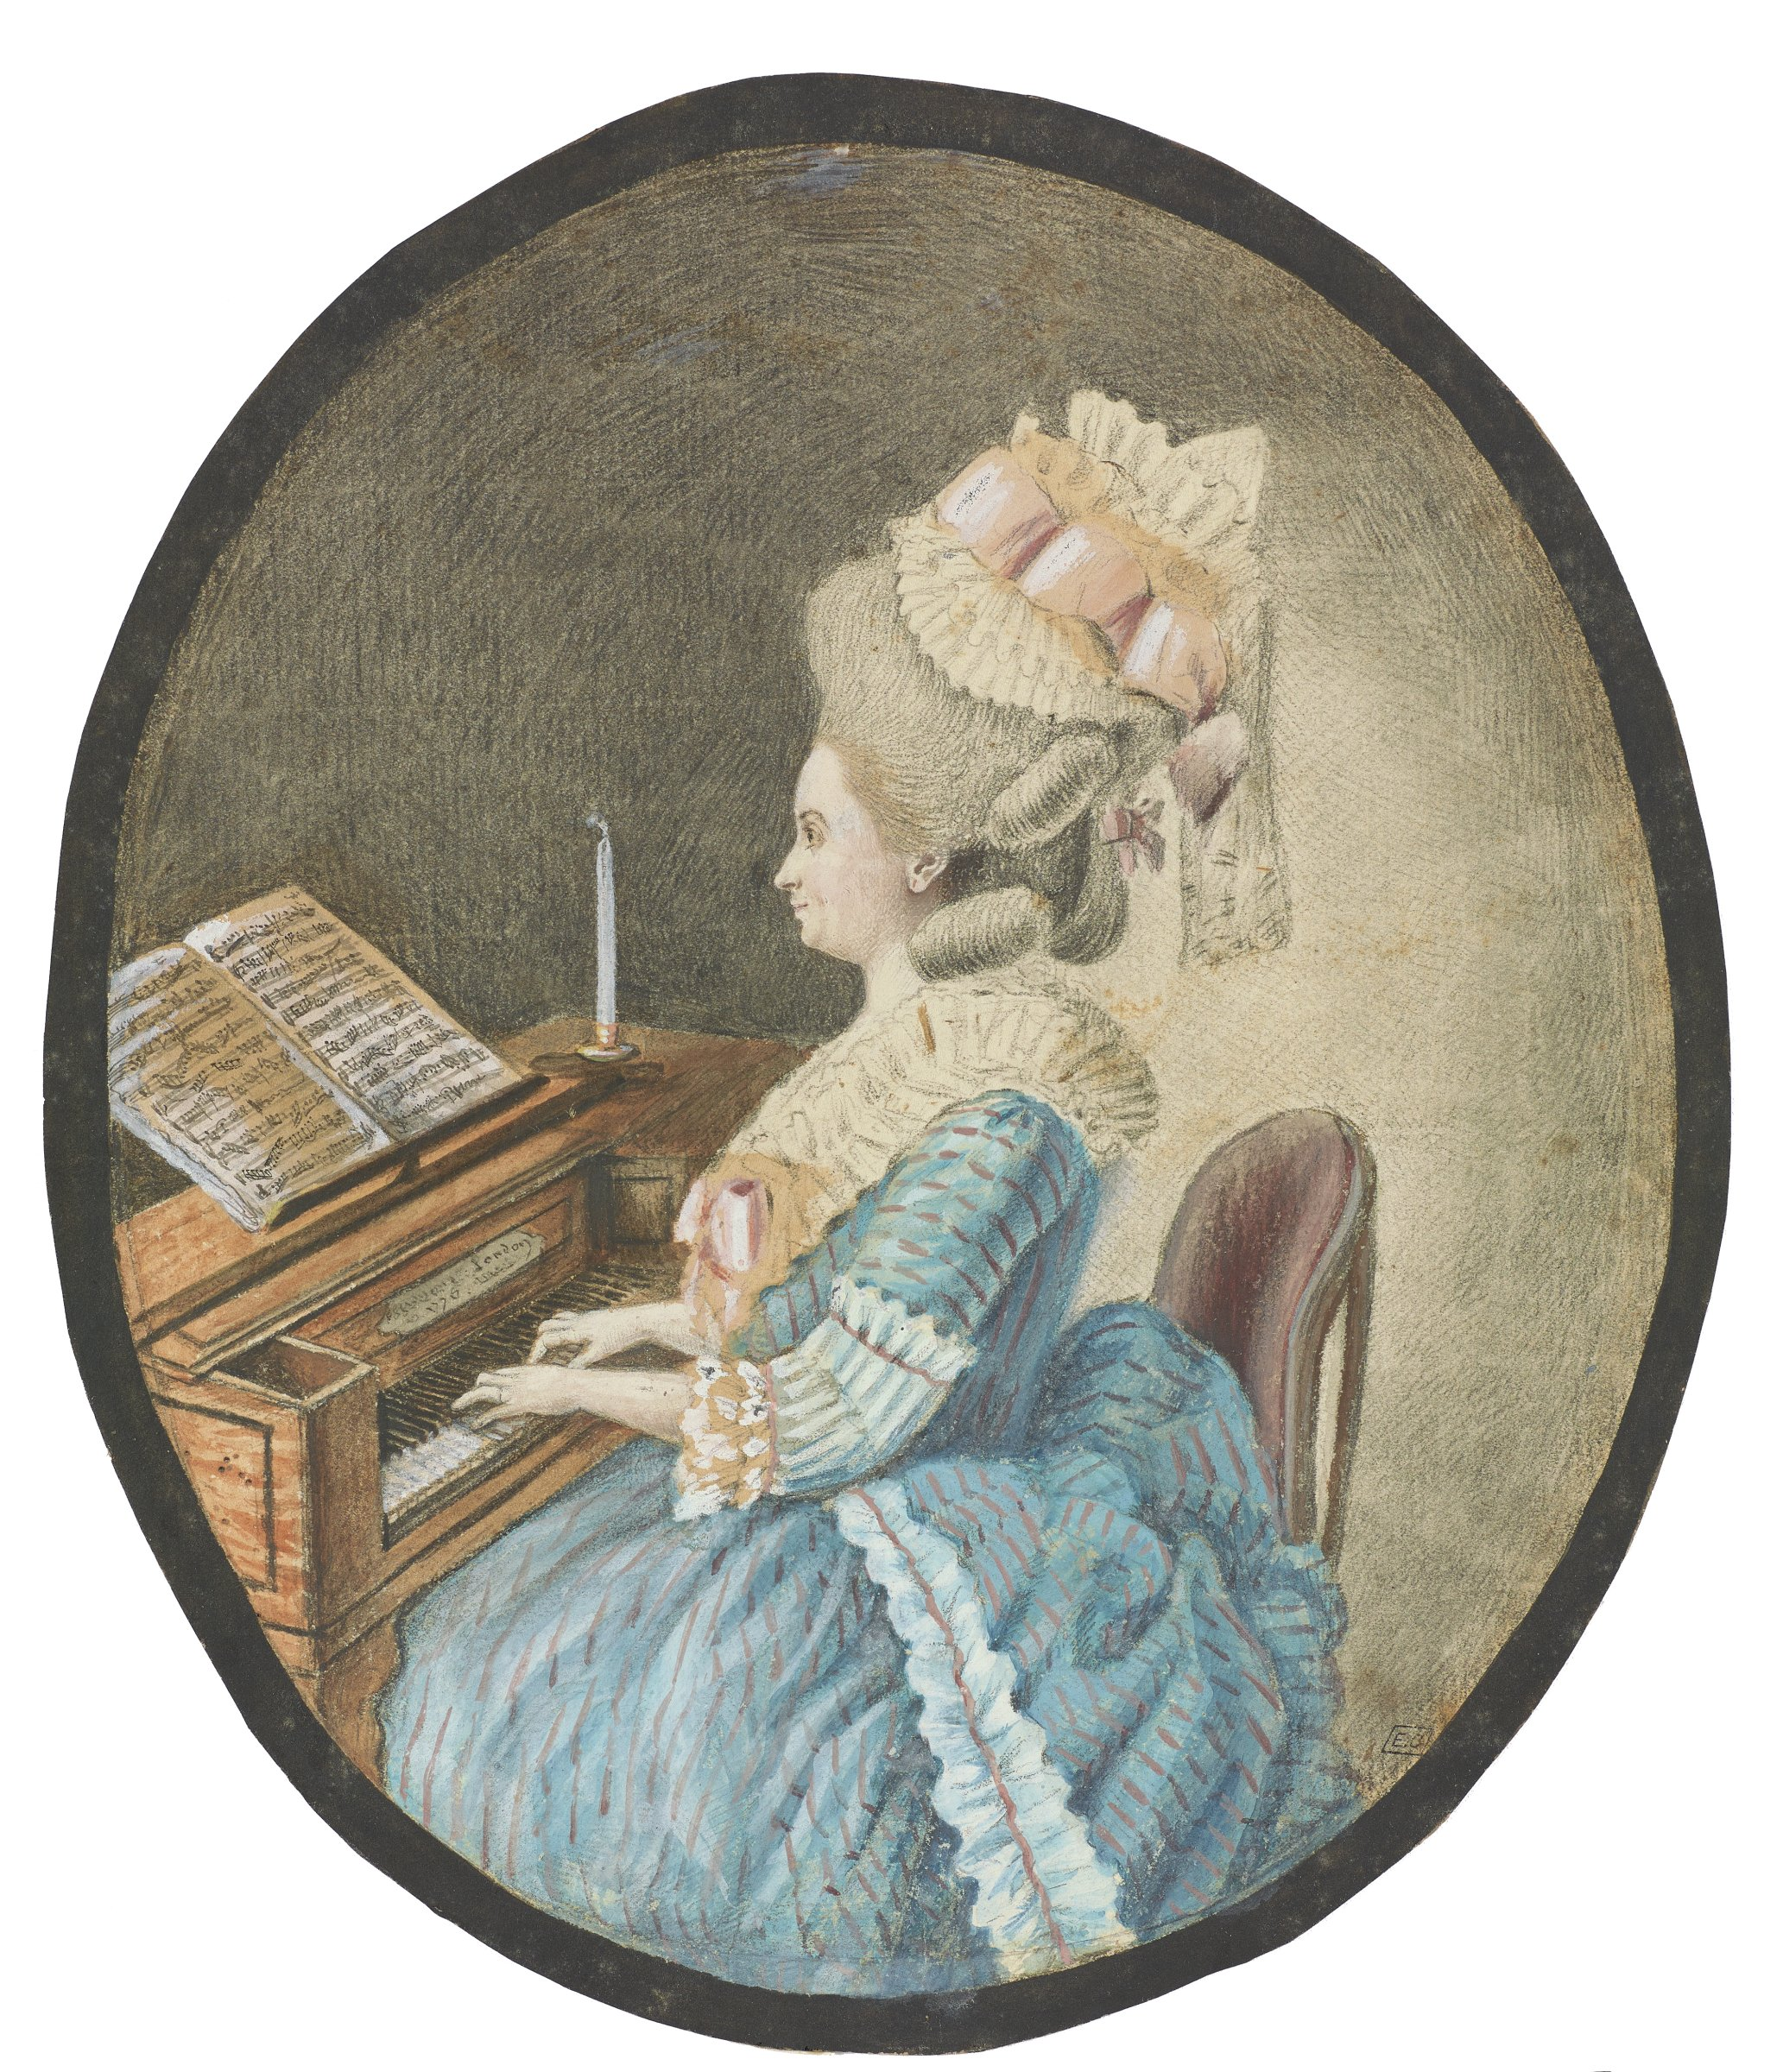 A woman wearing an elogant blue dress plays a clavier. She sits in profile facing the left.